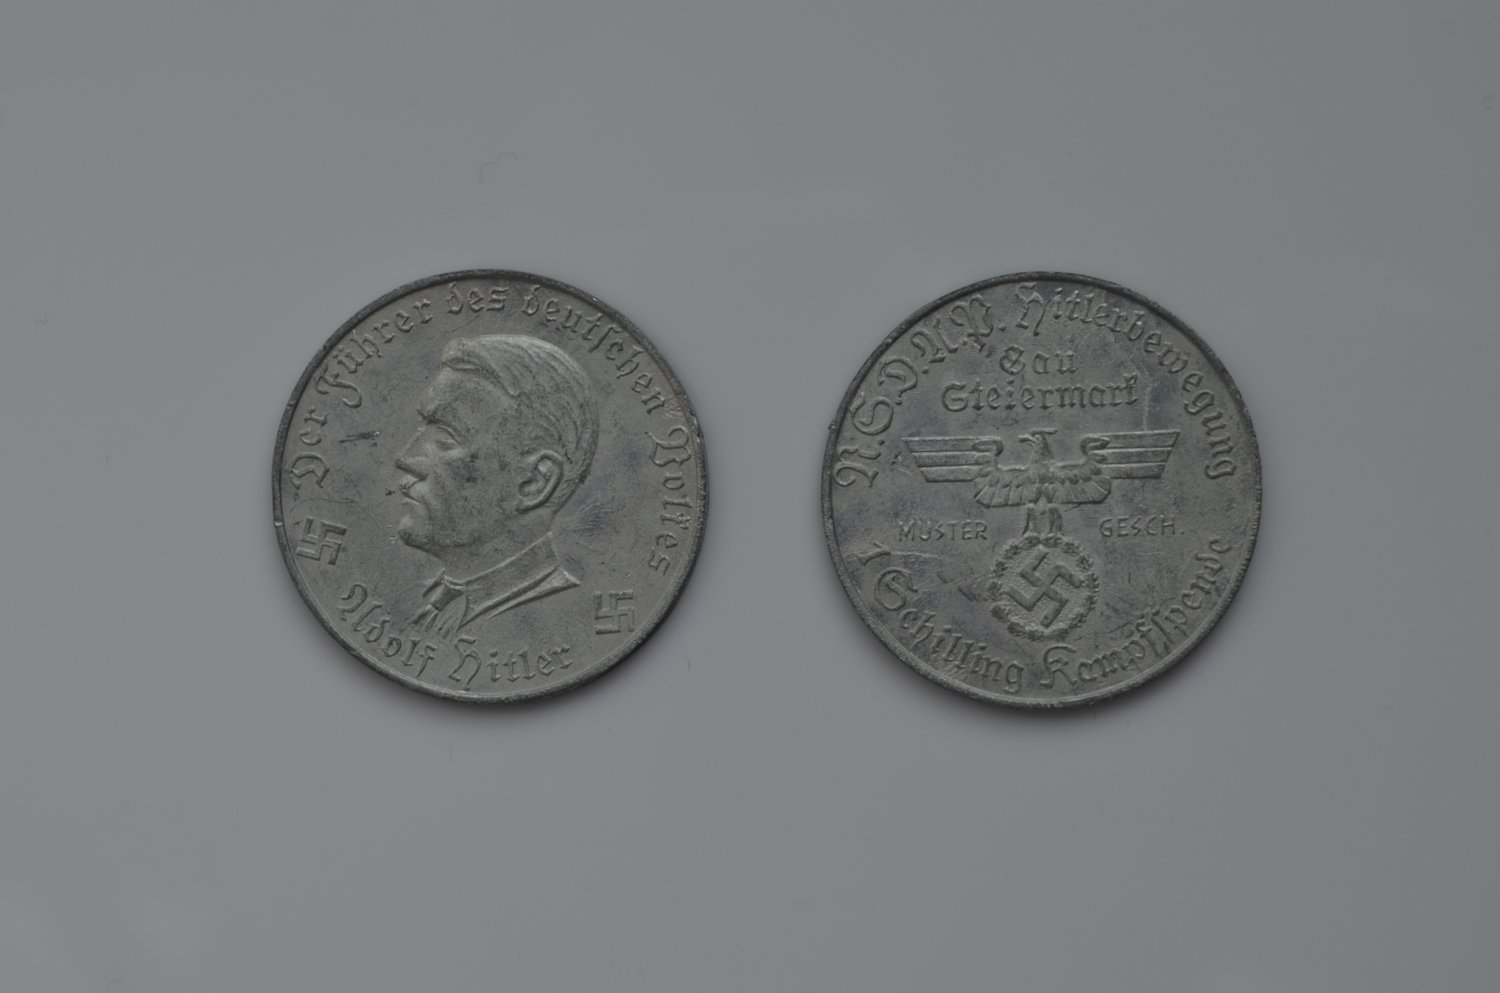 WWII GERMAN MEDAL TOKEN ADOLF HITLER